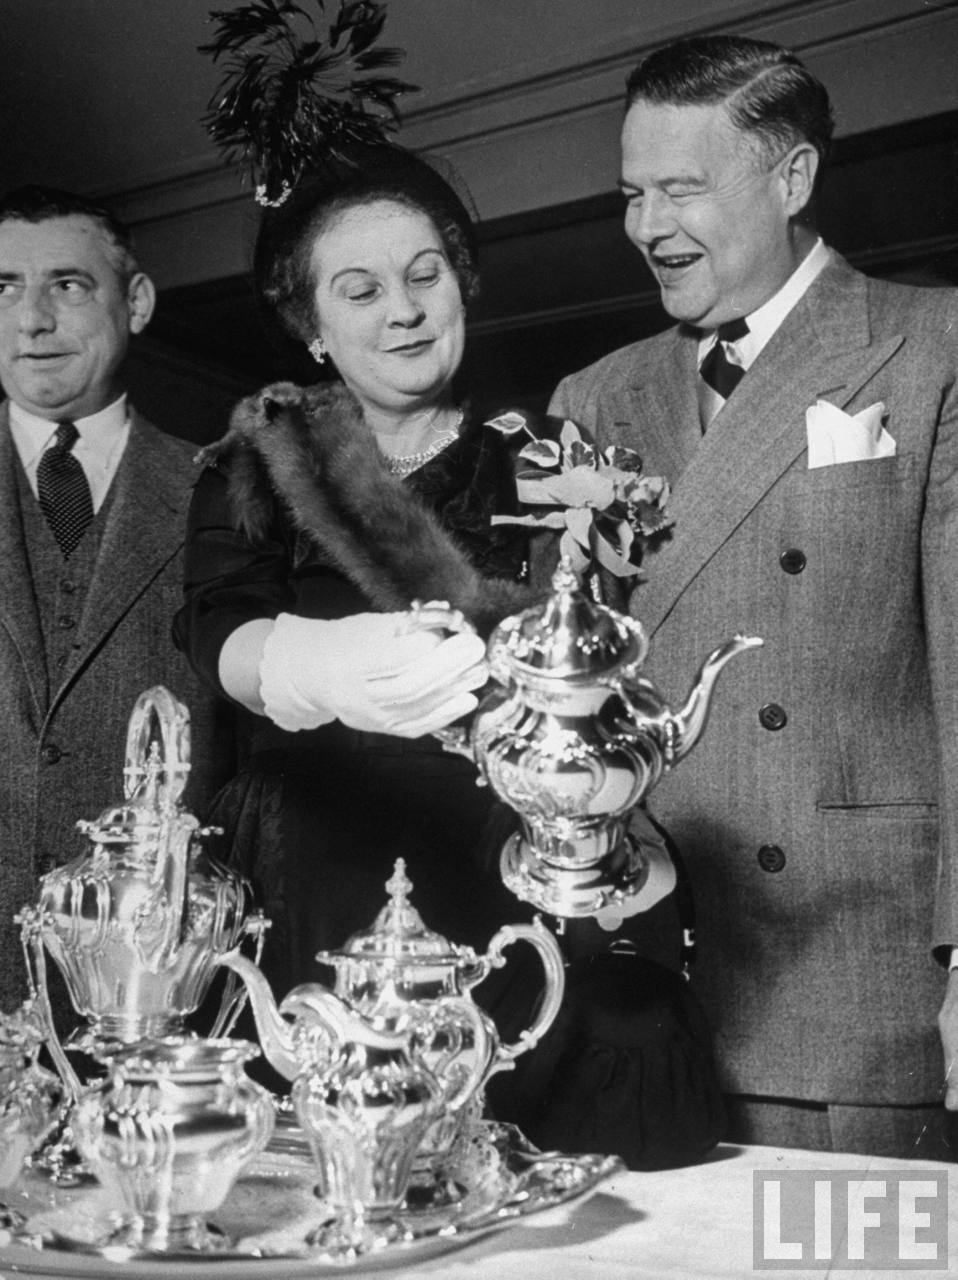 Guest of honor William M. Boyle Jr. (R), looking over a silver service that cost $2,250, given to him at the testimonial dinner by the Democrats.